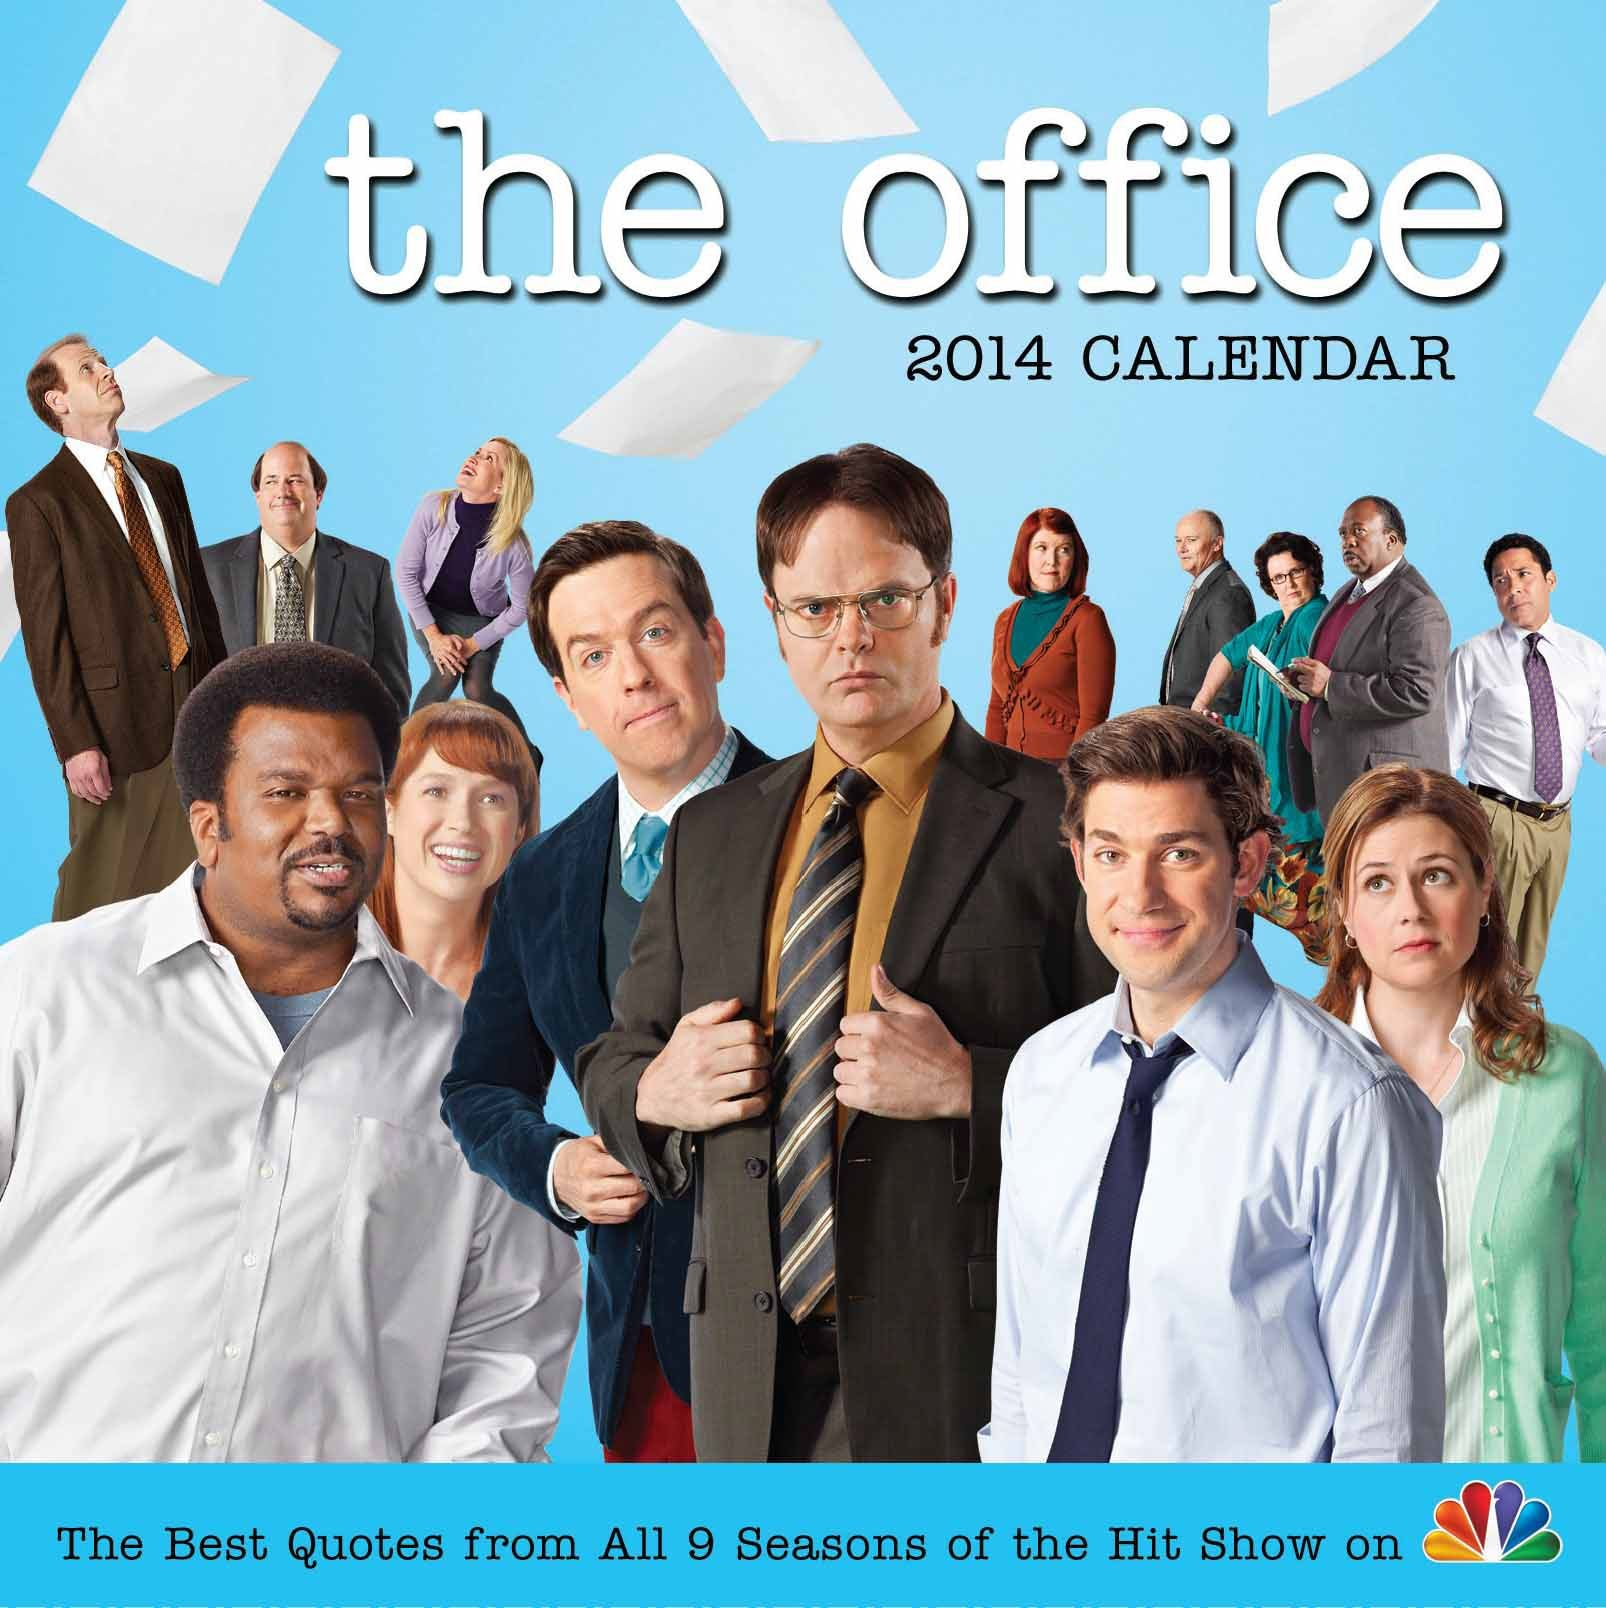 pictures of the office. The Office Calendar Pictures Of